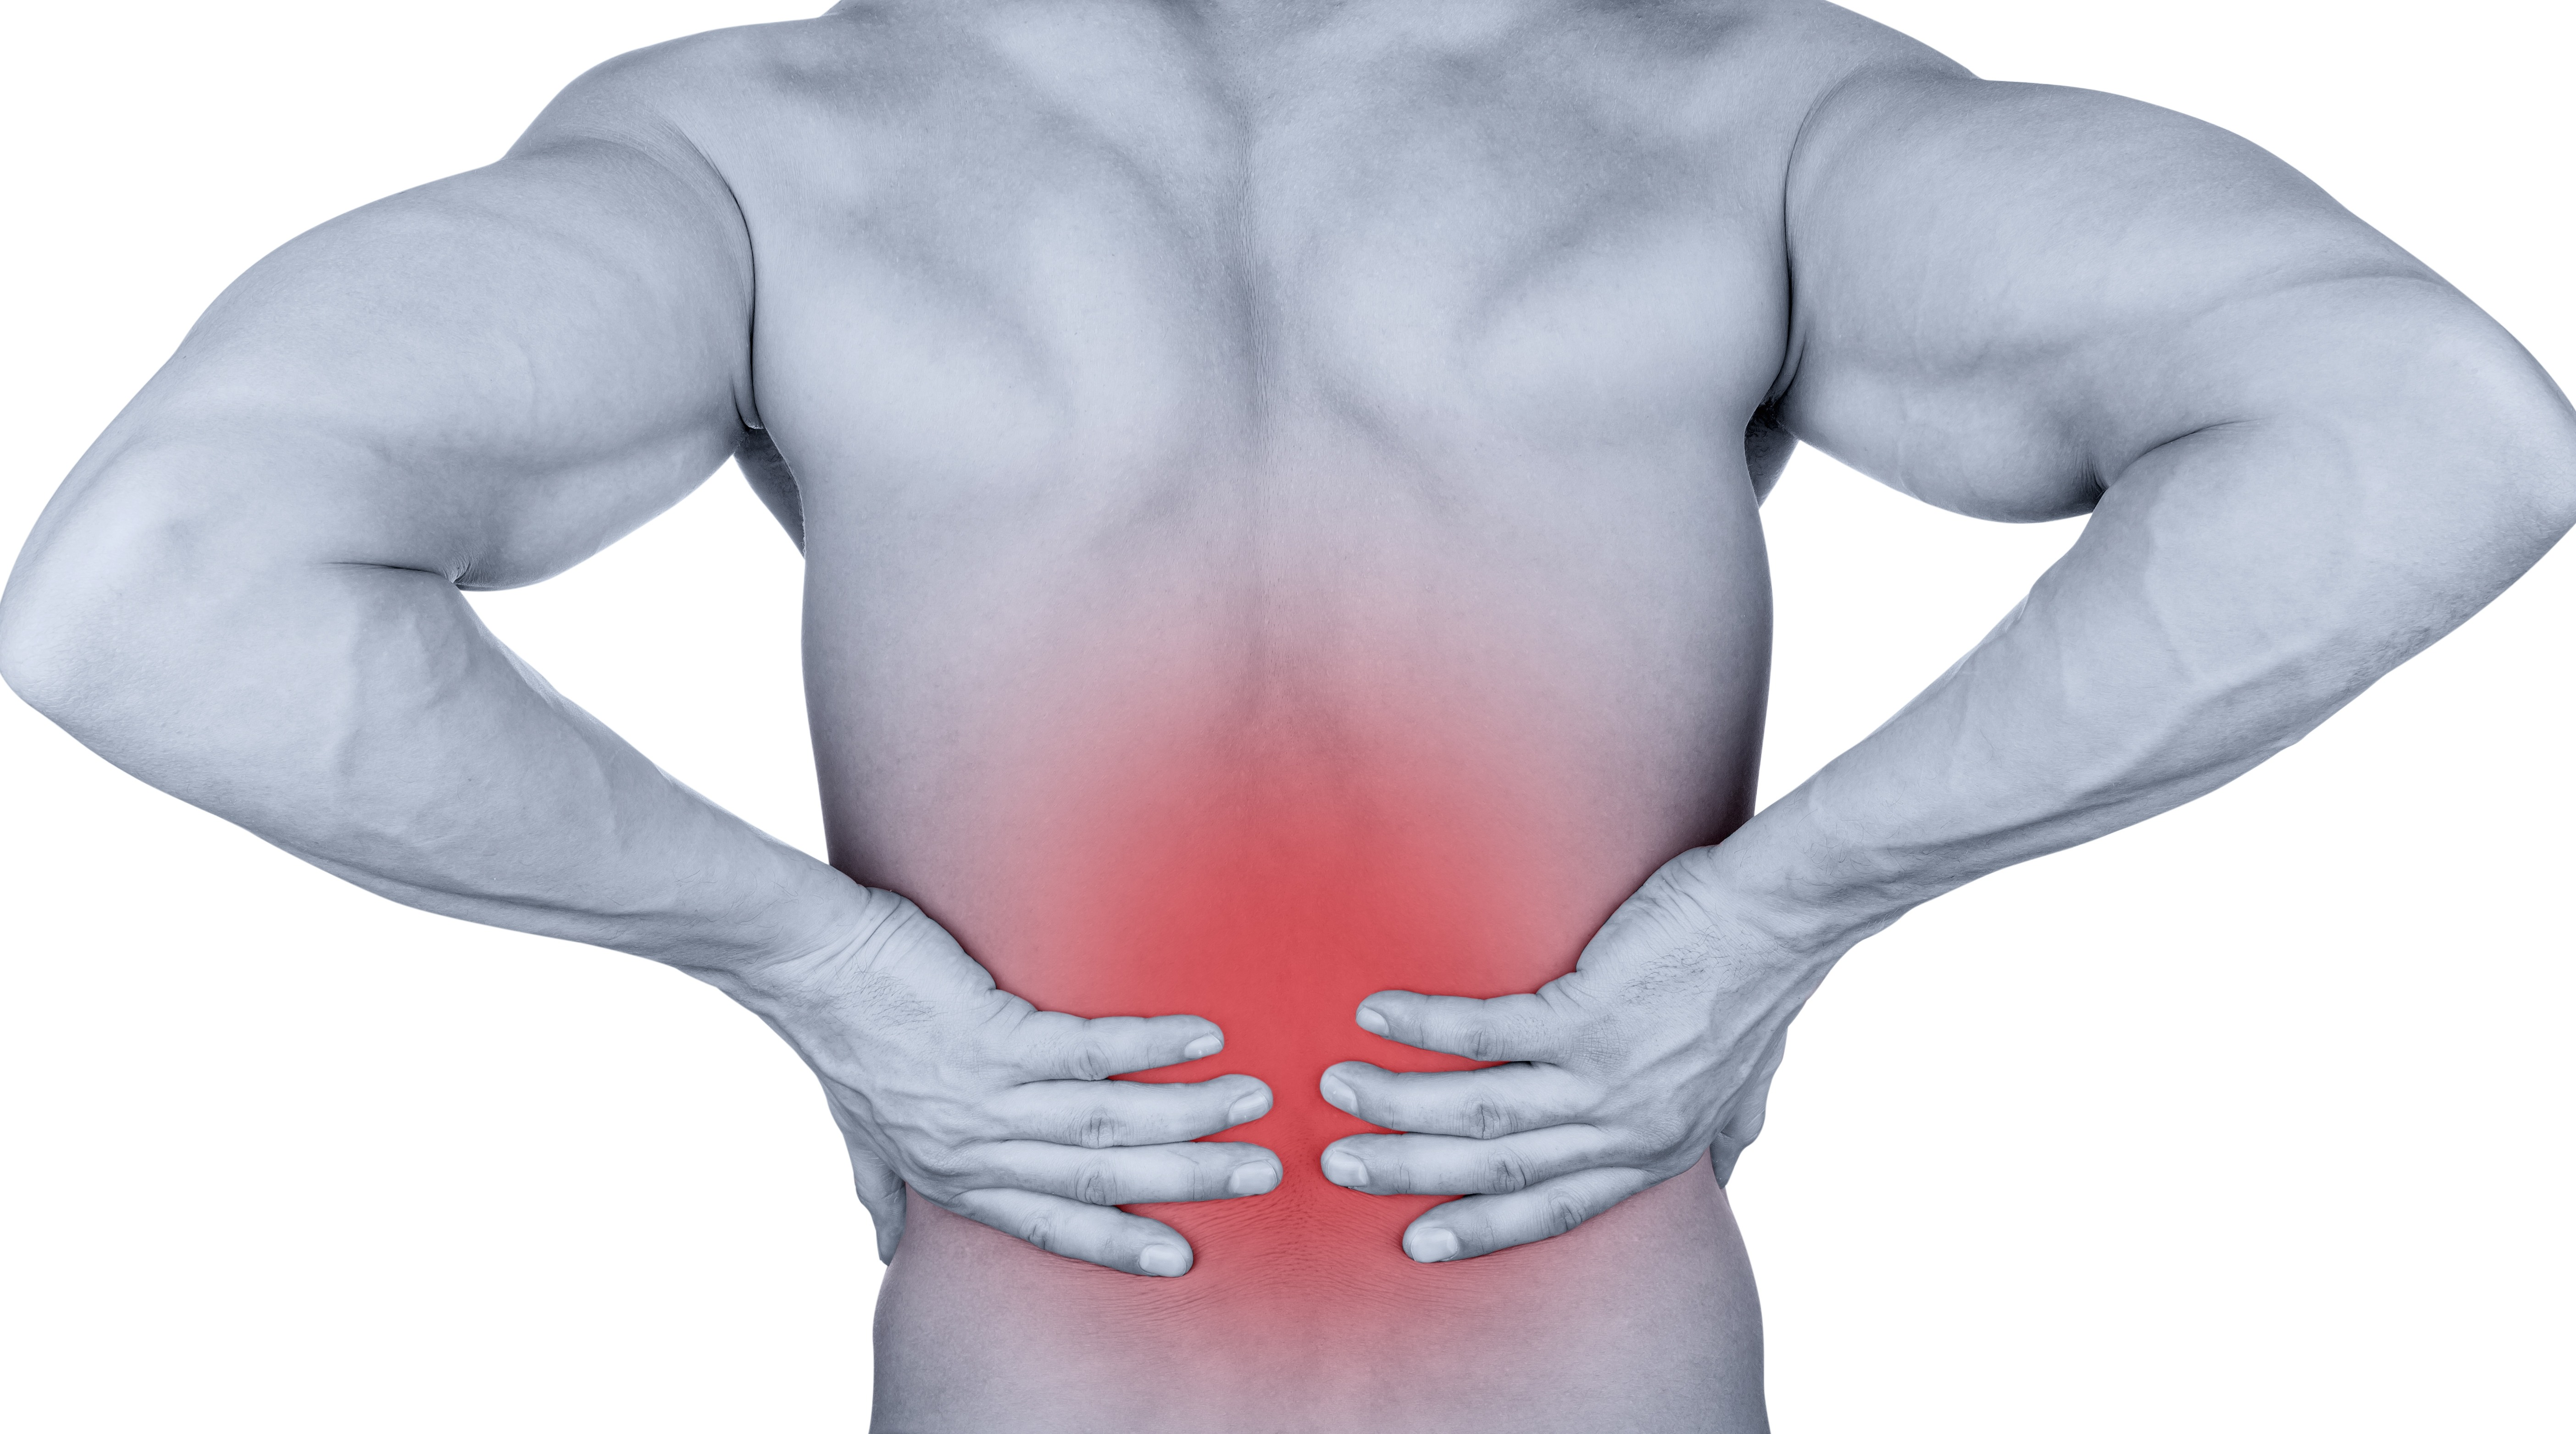 Laser therapy treatments for back pain